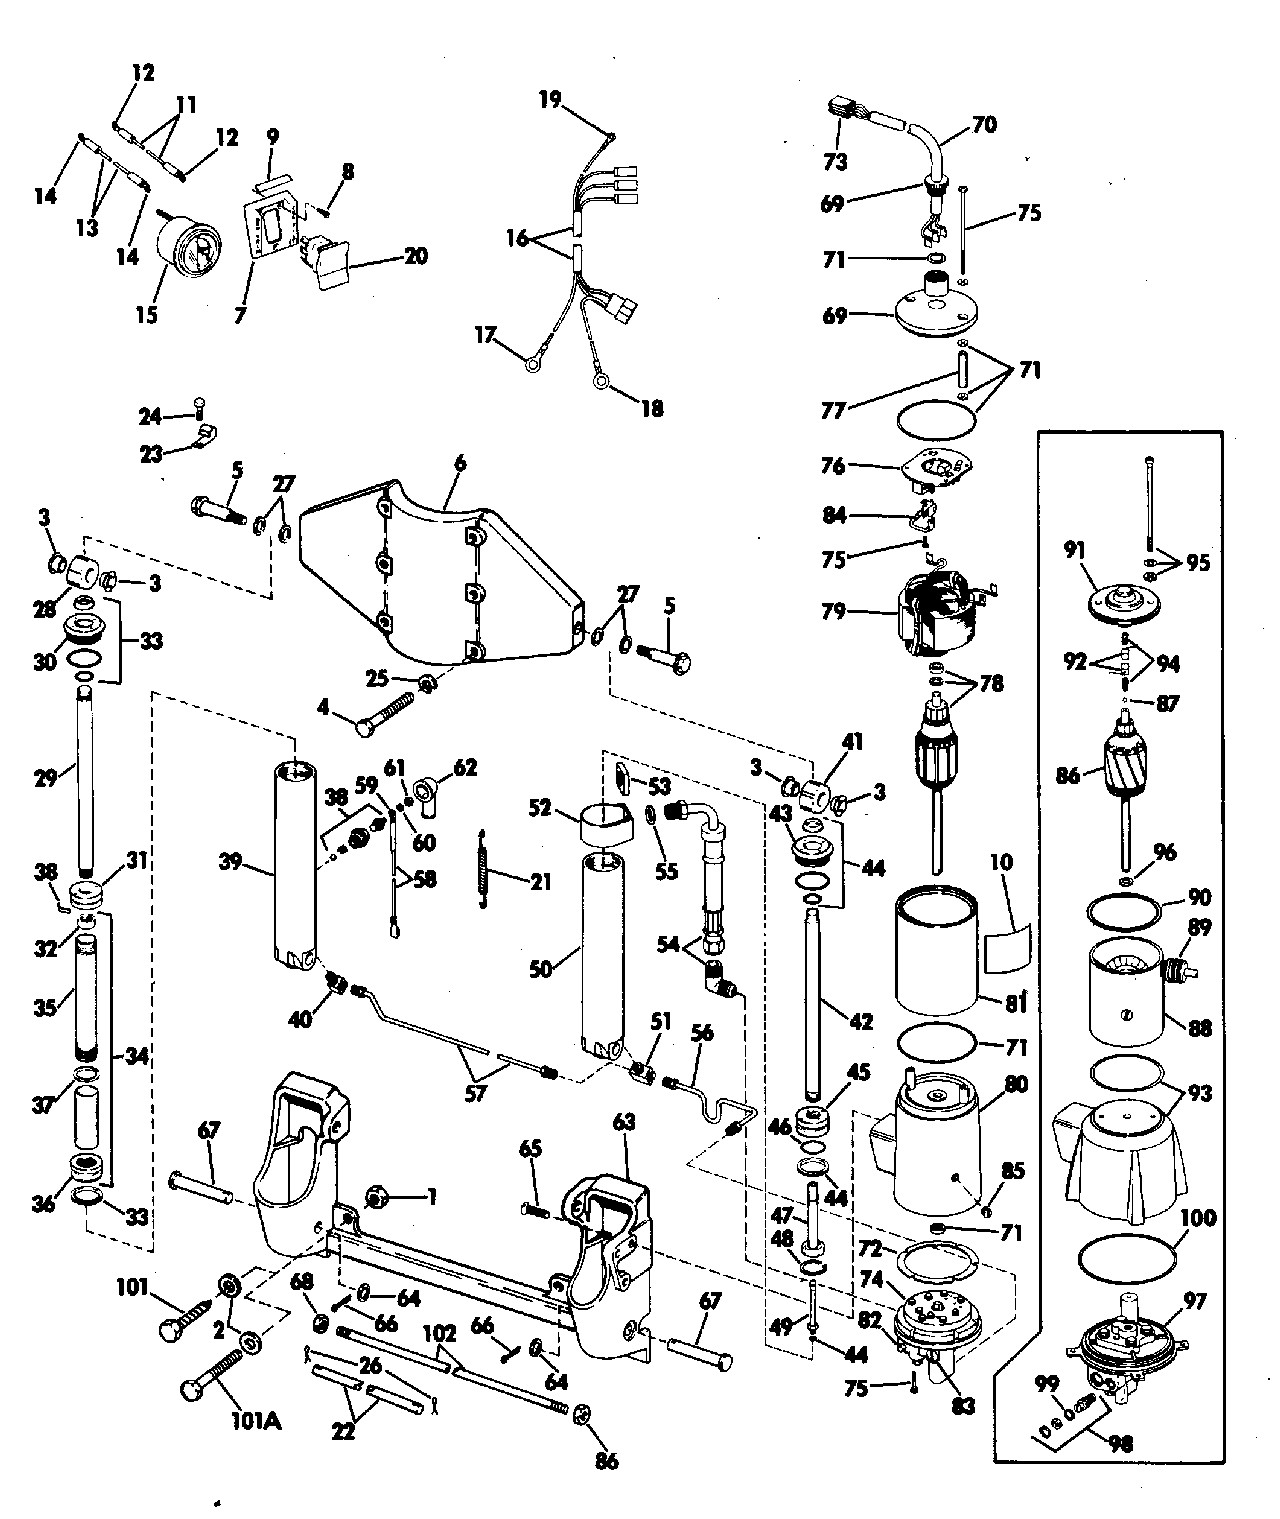 1974 mercury outboard ignition switch wiring diagram 1974 circuit